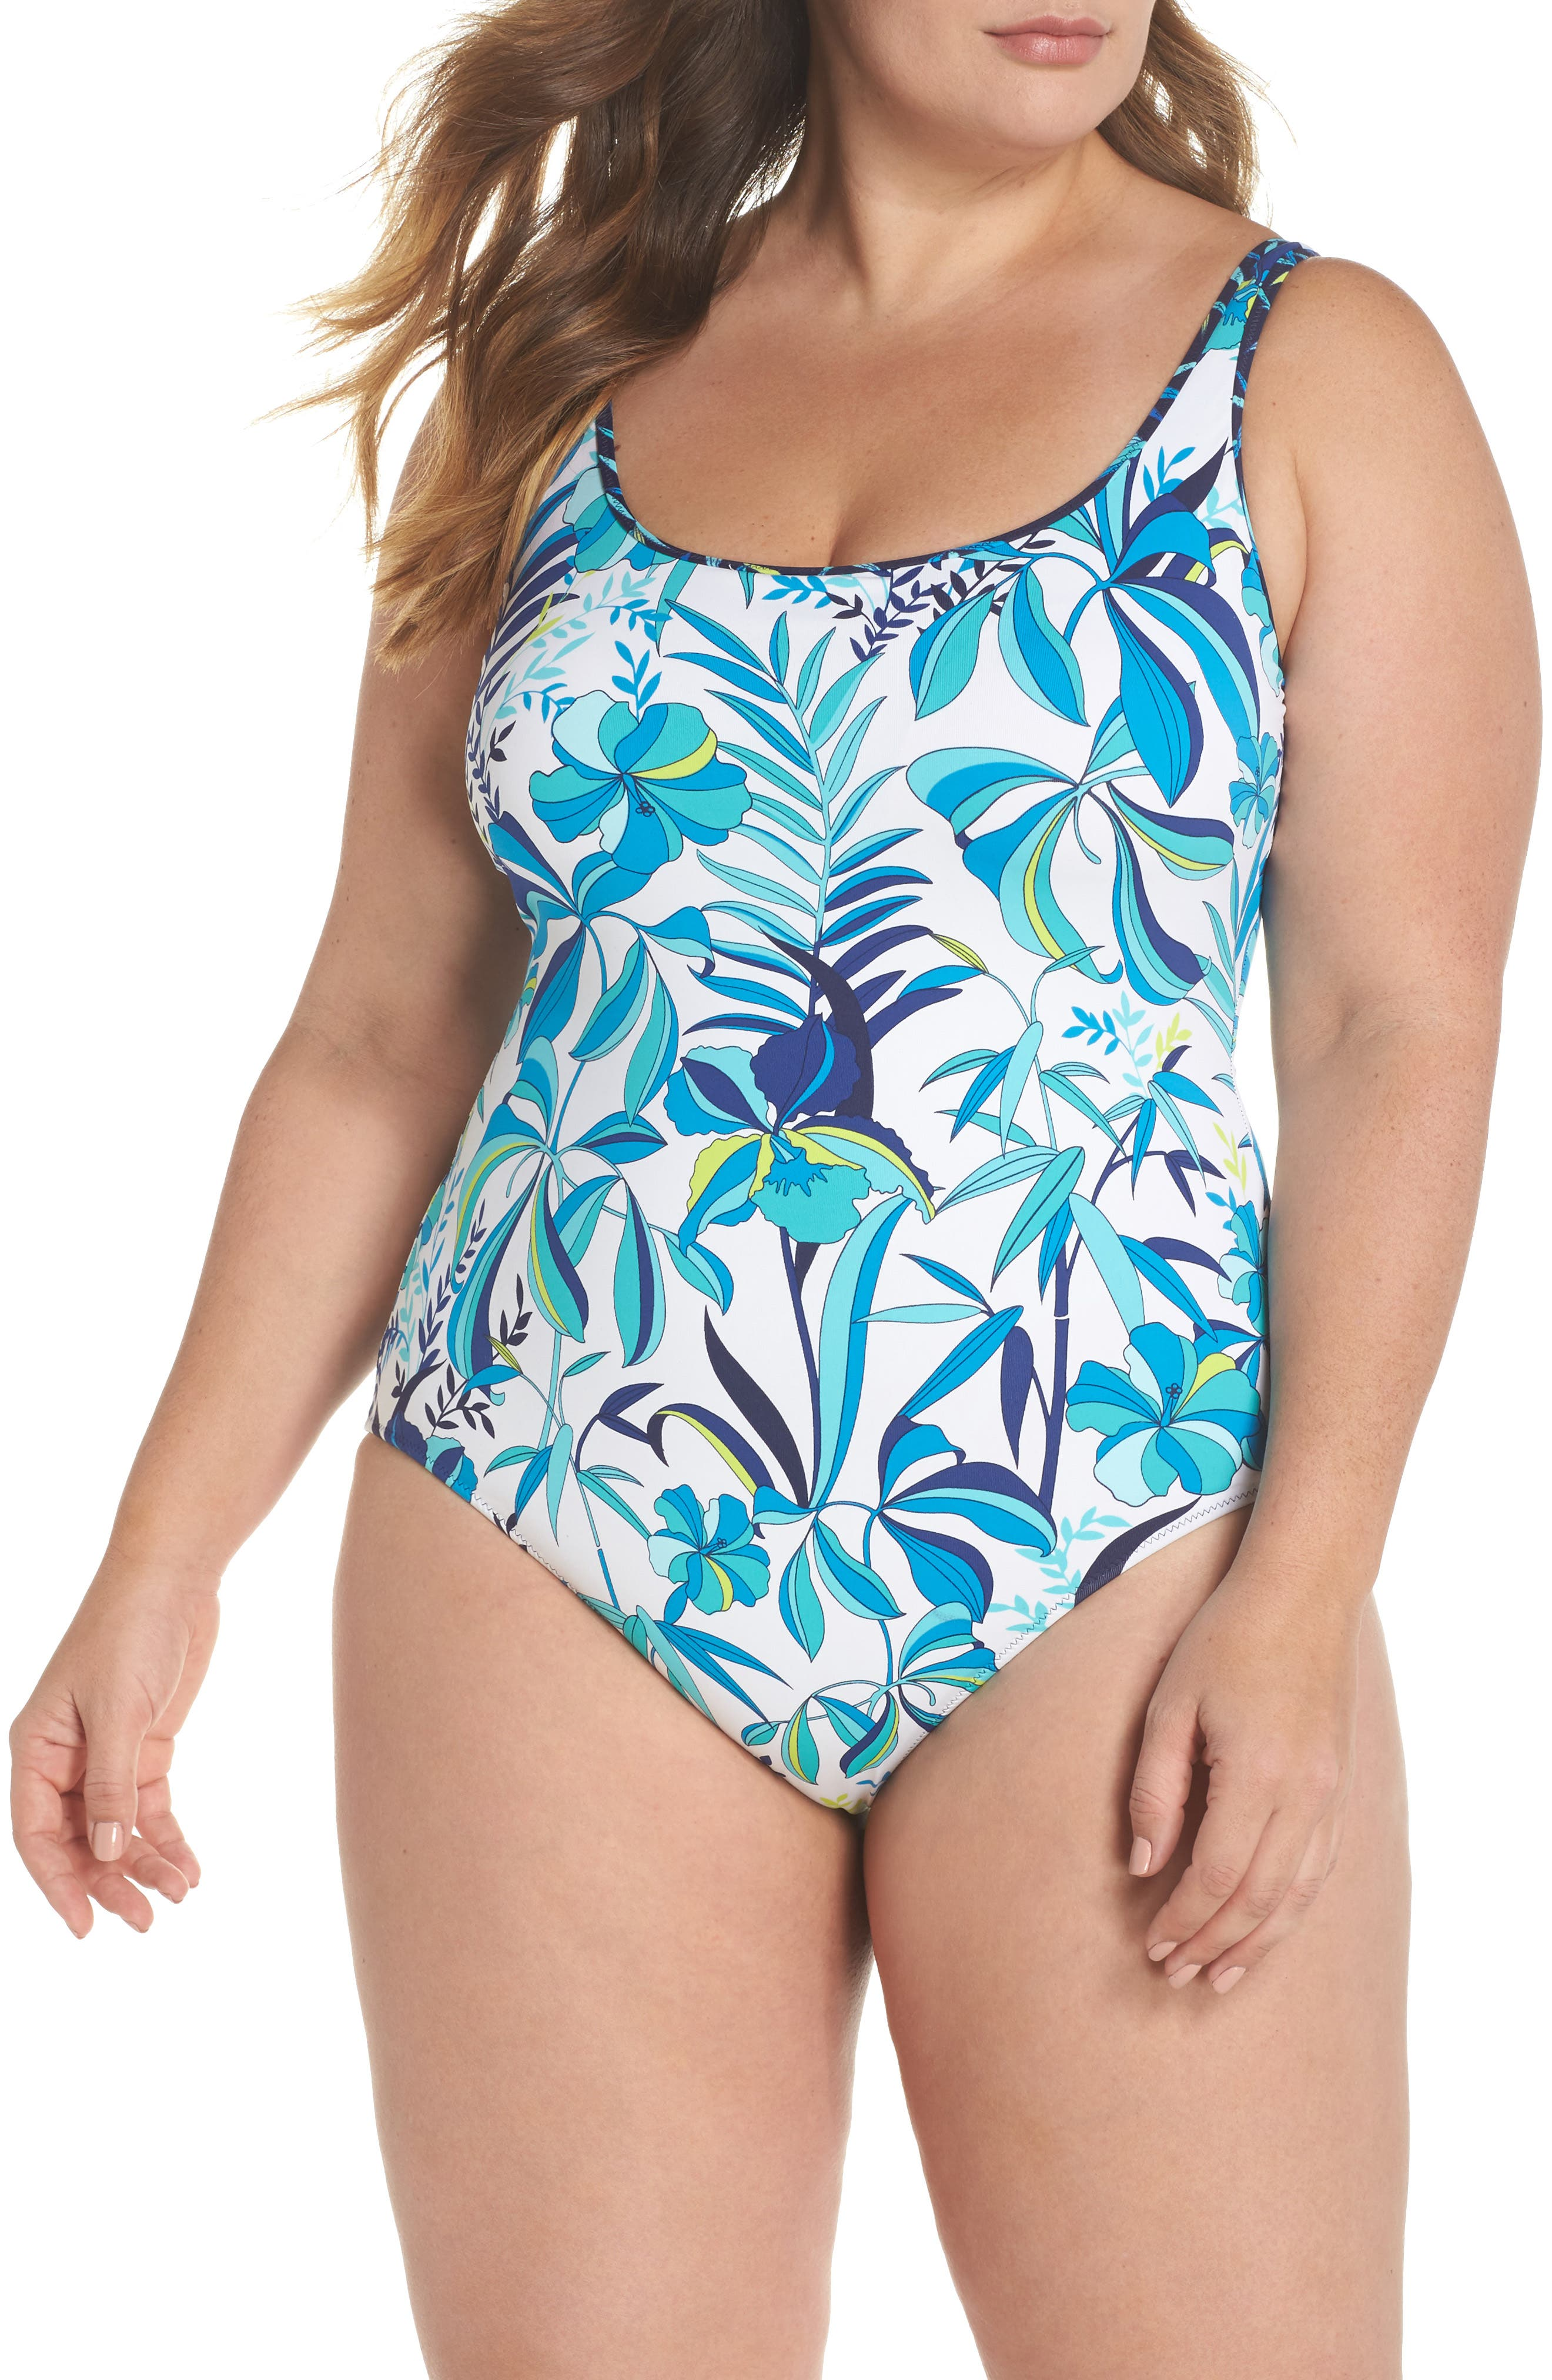 Tropical Swirl Reversible One-Piece Swimsuit,                         Main,                         color, White